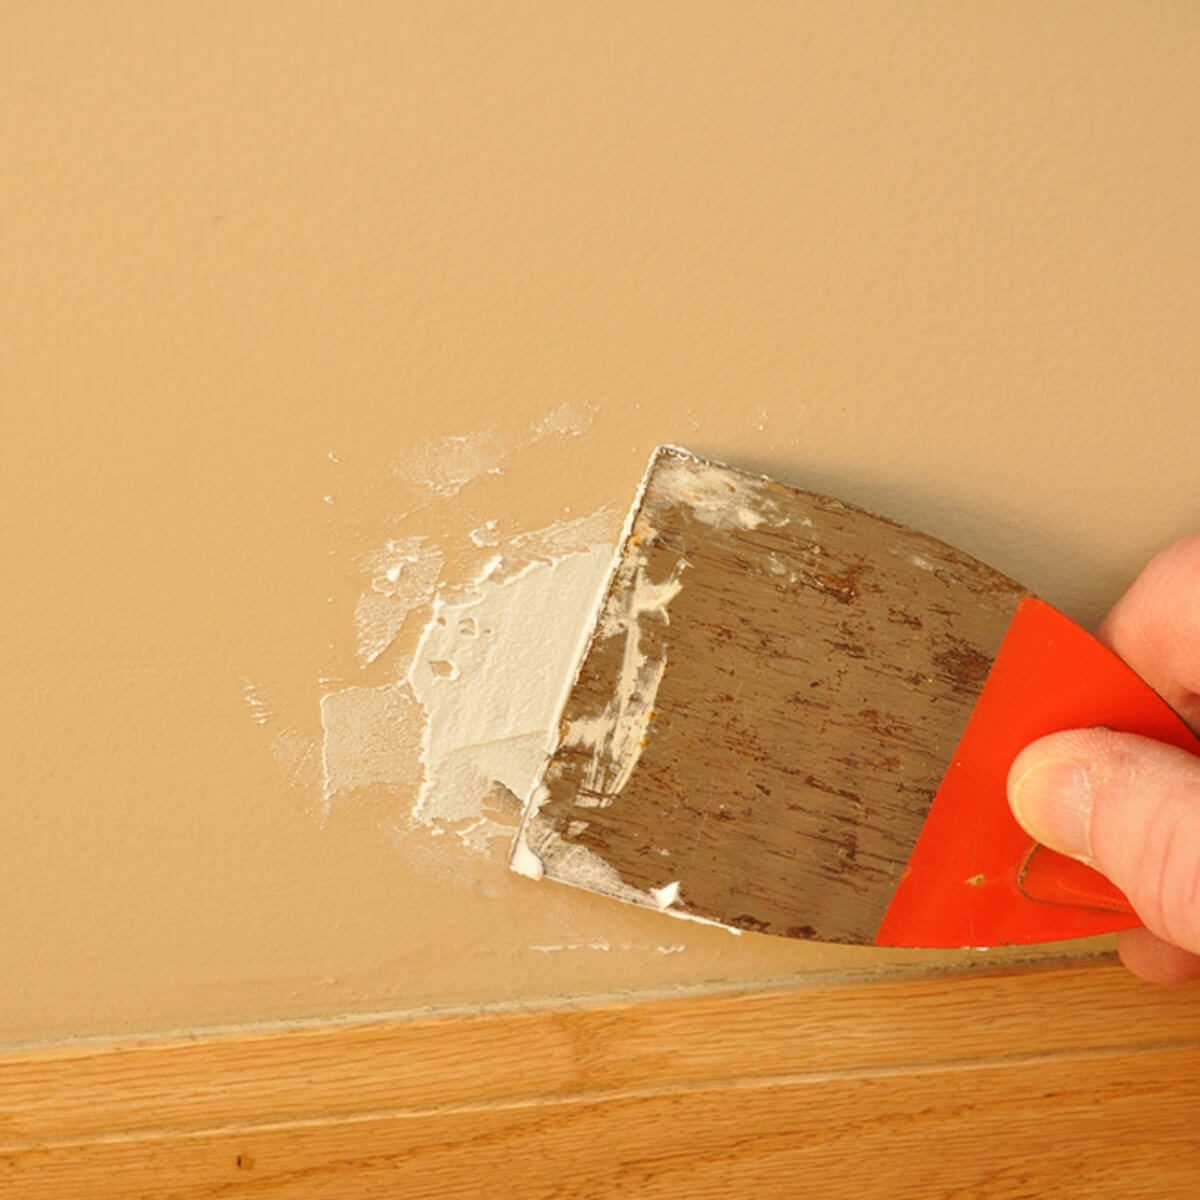 drywall patch repair dfh9_shutterstock_44331991